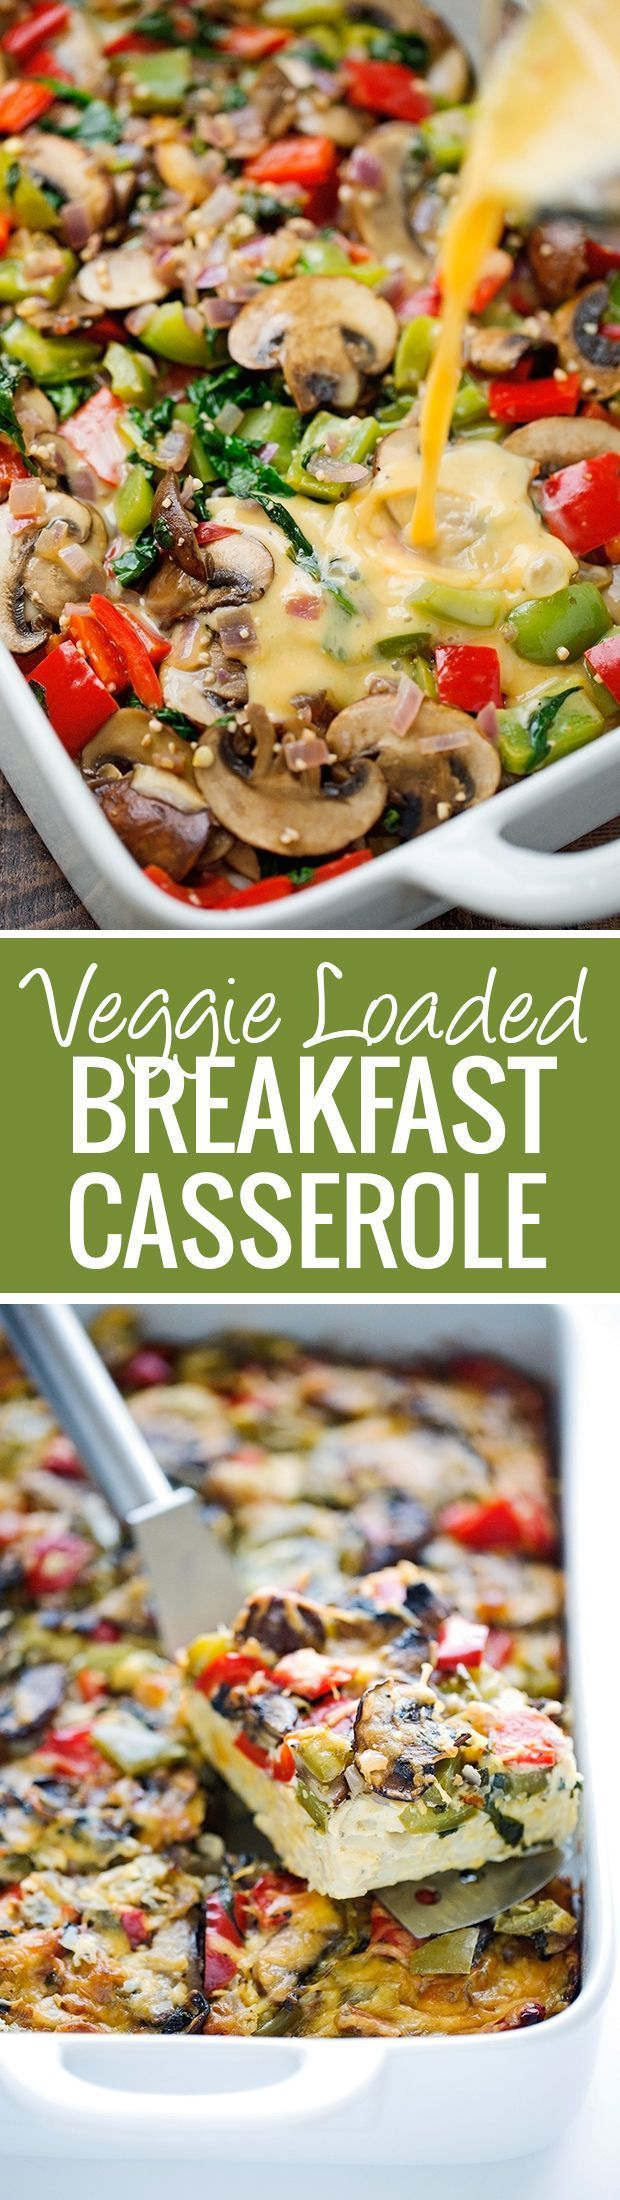 Breakfast Casserole Veggie Loaded Breakfast Casserole - made with hash browns and all your favorite veggies! Add in rotisserie chicken, crumbled sausage or anything else you please - it's totally customizable! |  @littlepsicejarVeggie Loaded Breakfast Casserole - made with hash browns and...